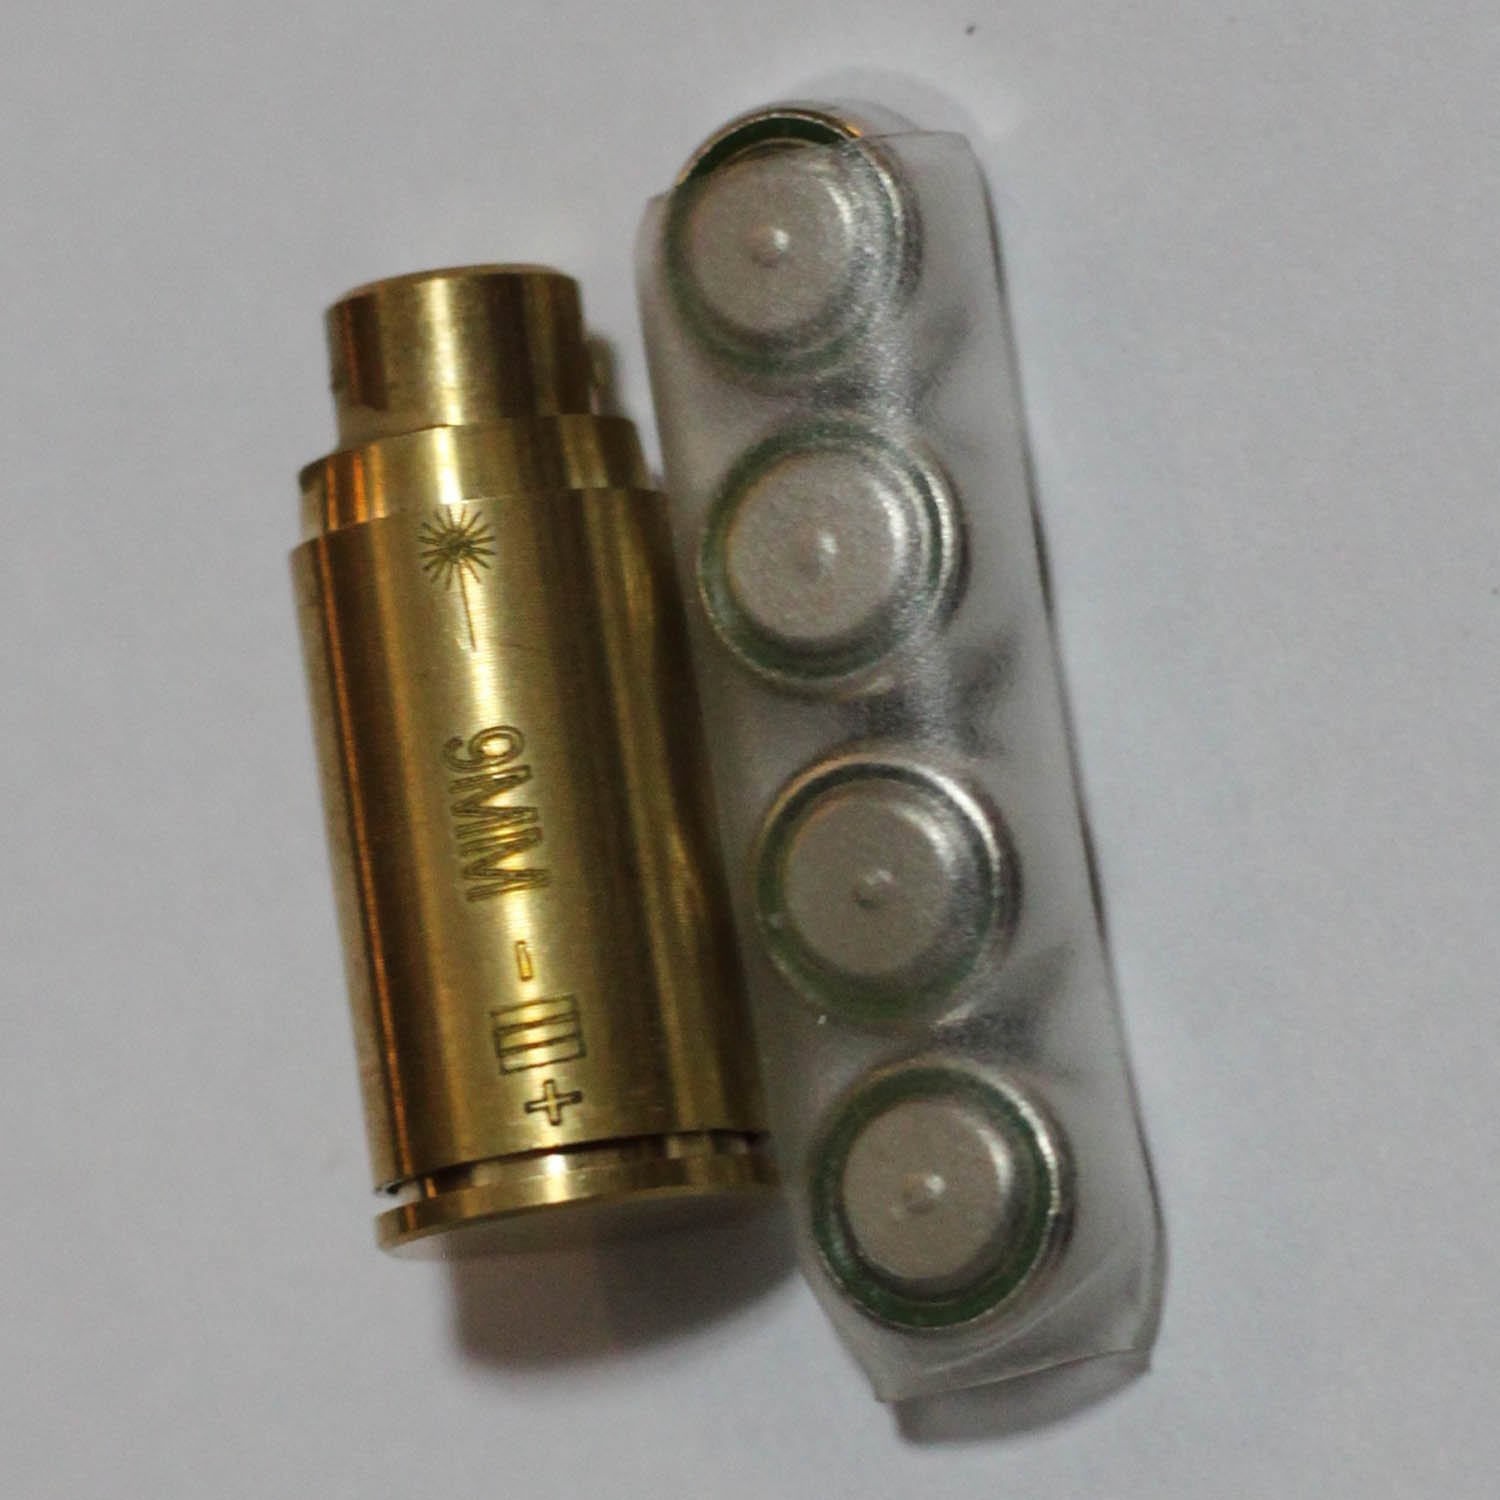 MAYMOC .9MM Bore Sight Red Dot in-Chamber Cartridge